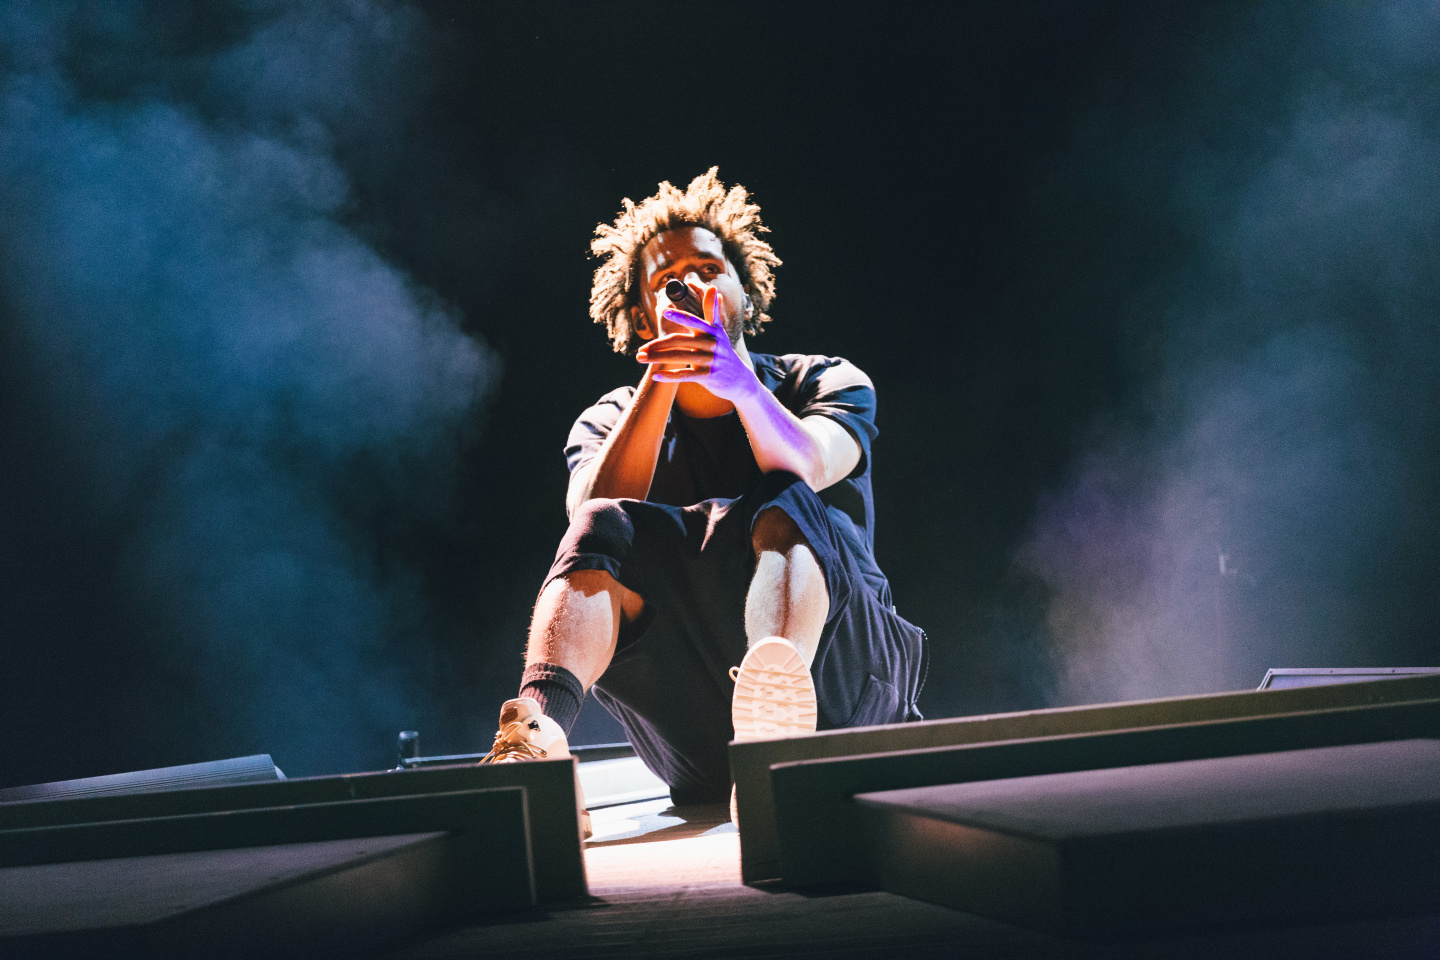 J. Cole Is The Mortal God His Fans Can Believe In